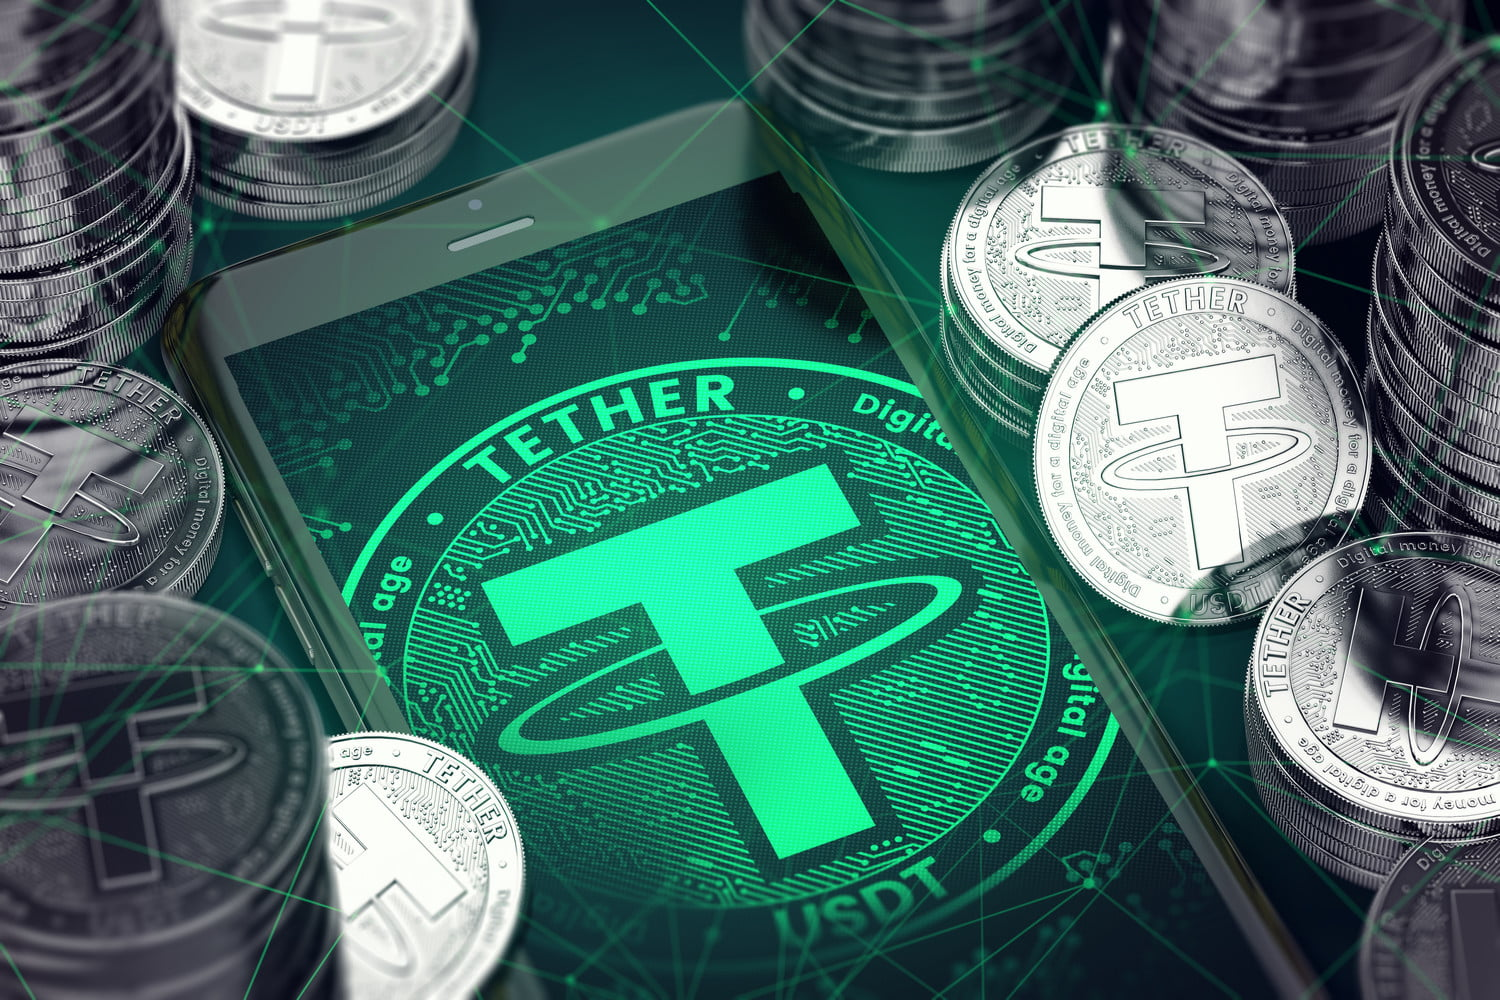 USDT - Tether (USDT) Is Too Dangerous To Hold, Says Peter Brandt